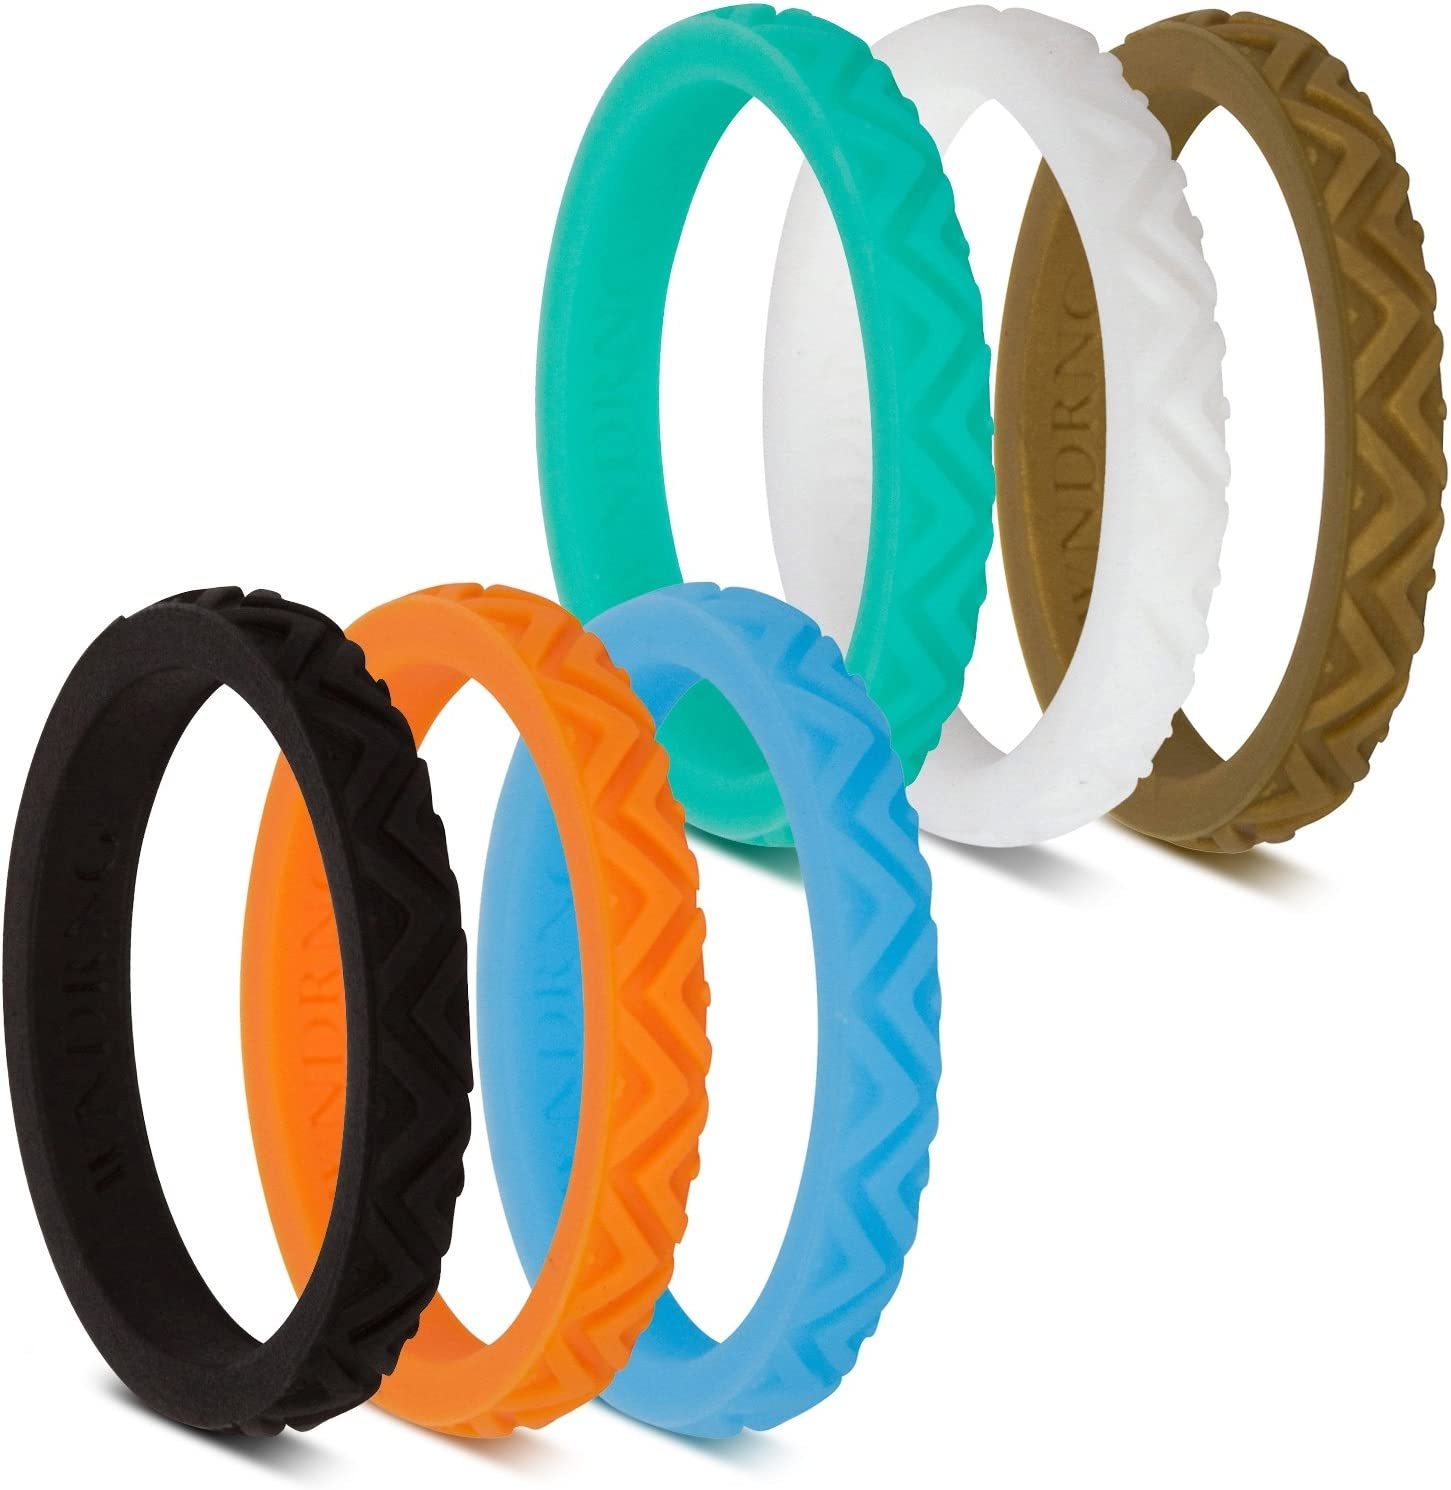 Nppwljj Stackable Silicone Wedding Ring for Gym Sports Outdoor Women Durable Rubber Band Pack of 3-7-10